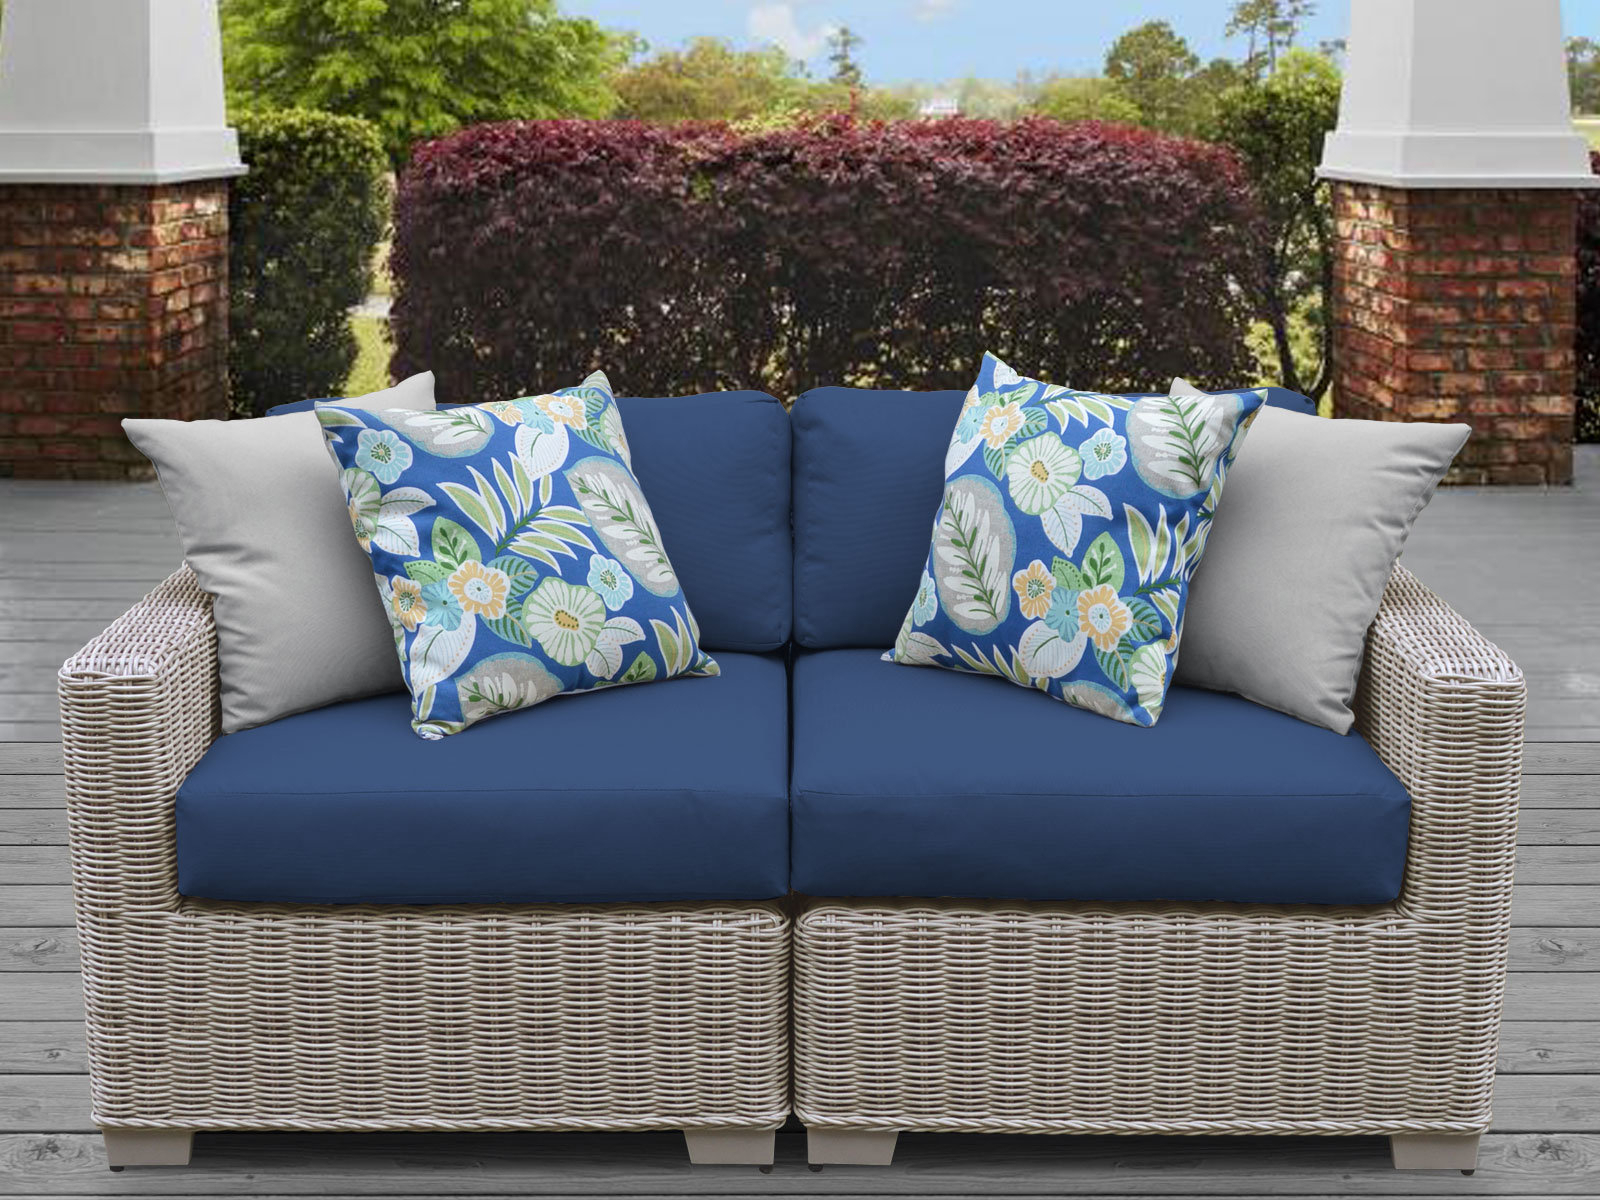 Most Recently Released Loggins Loveseats With Cushions Pertaining To Claire Loveseat With Cushions (View 7 of 20)